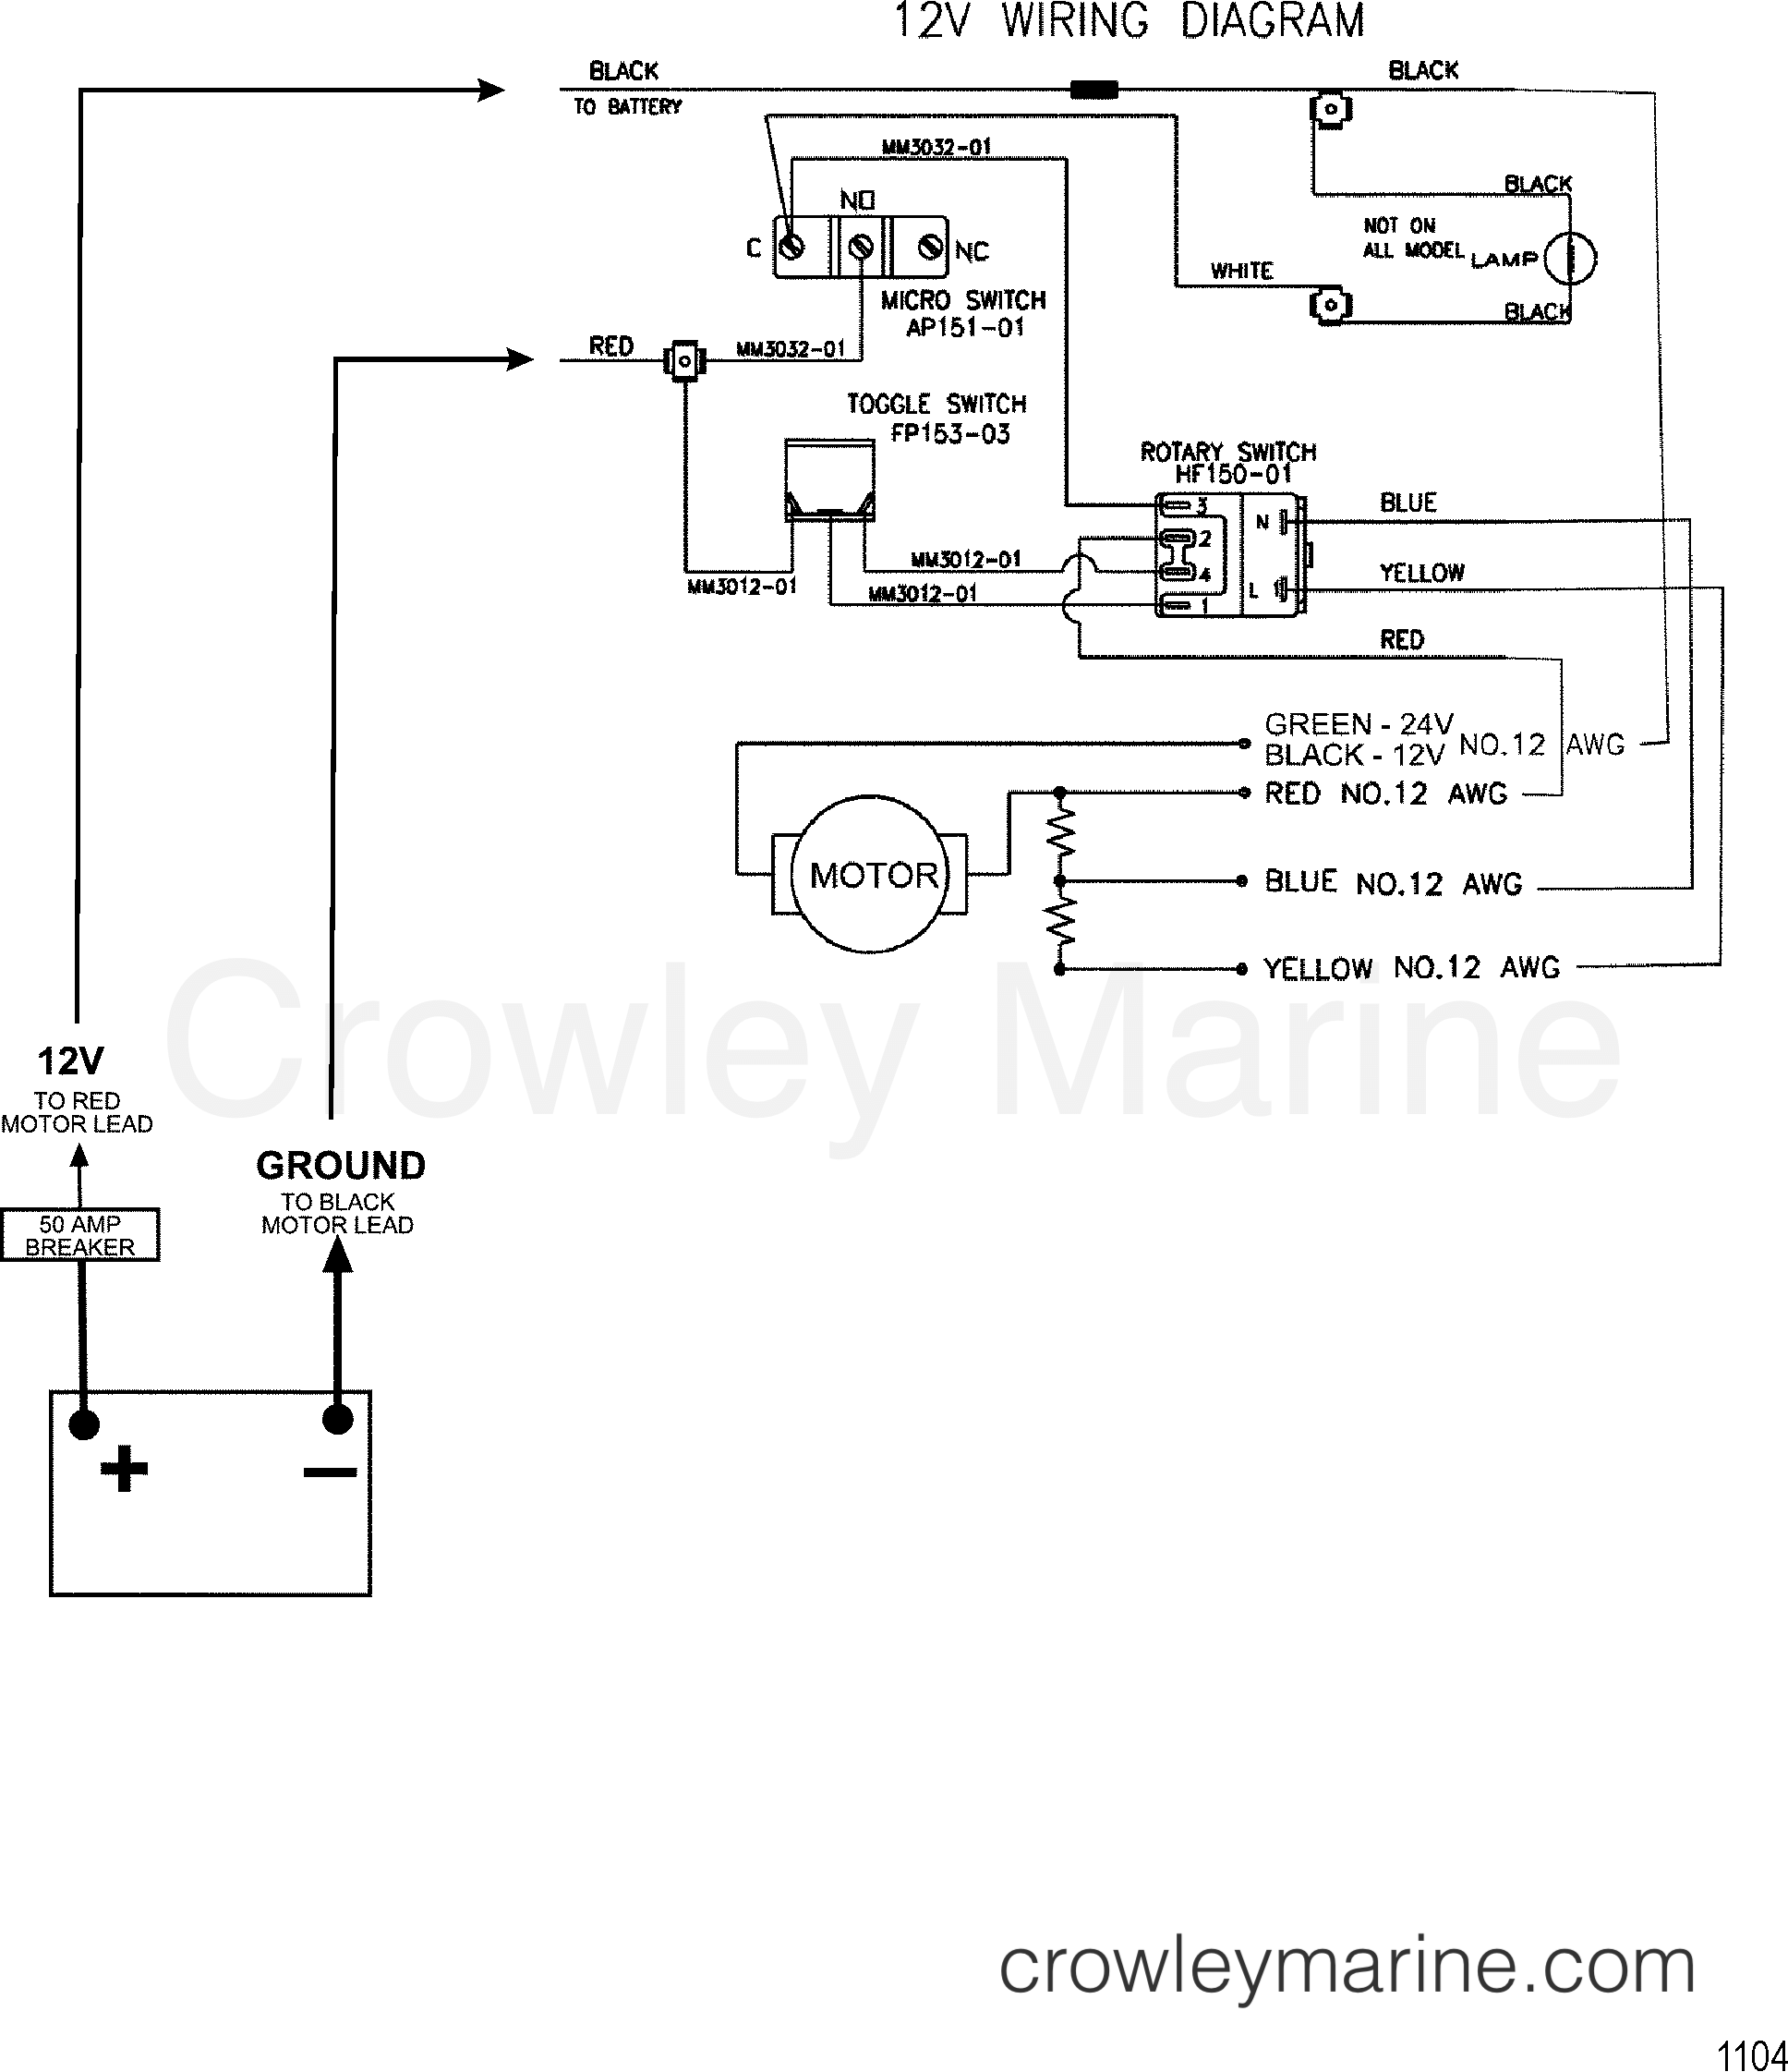 Motorguide Wiring Diagrams Online Manuual Of Diagram Amana Arb2214cw Wire Model 743 12 Volt 1999 Rh Crowleymarine Com